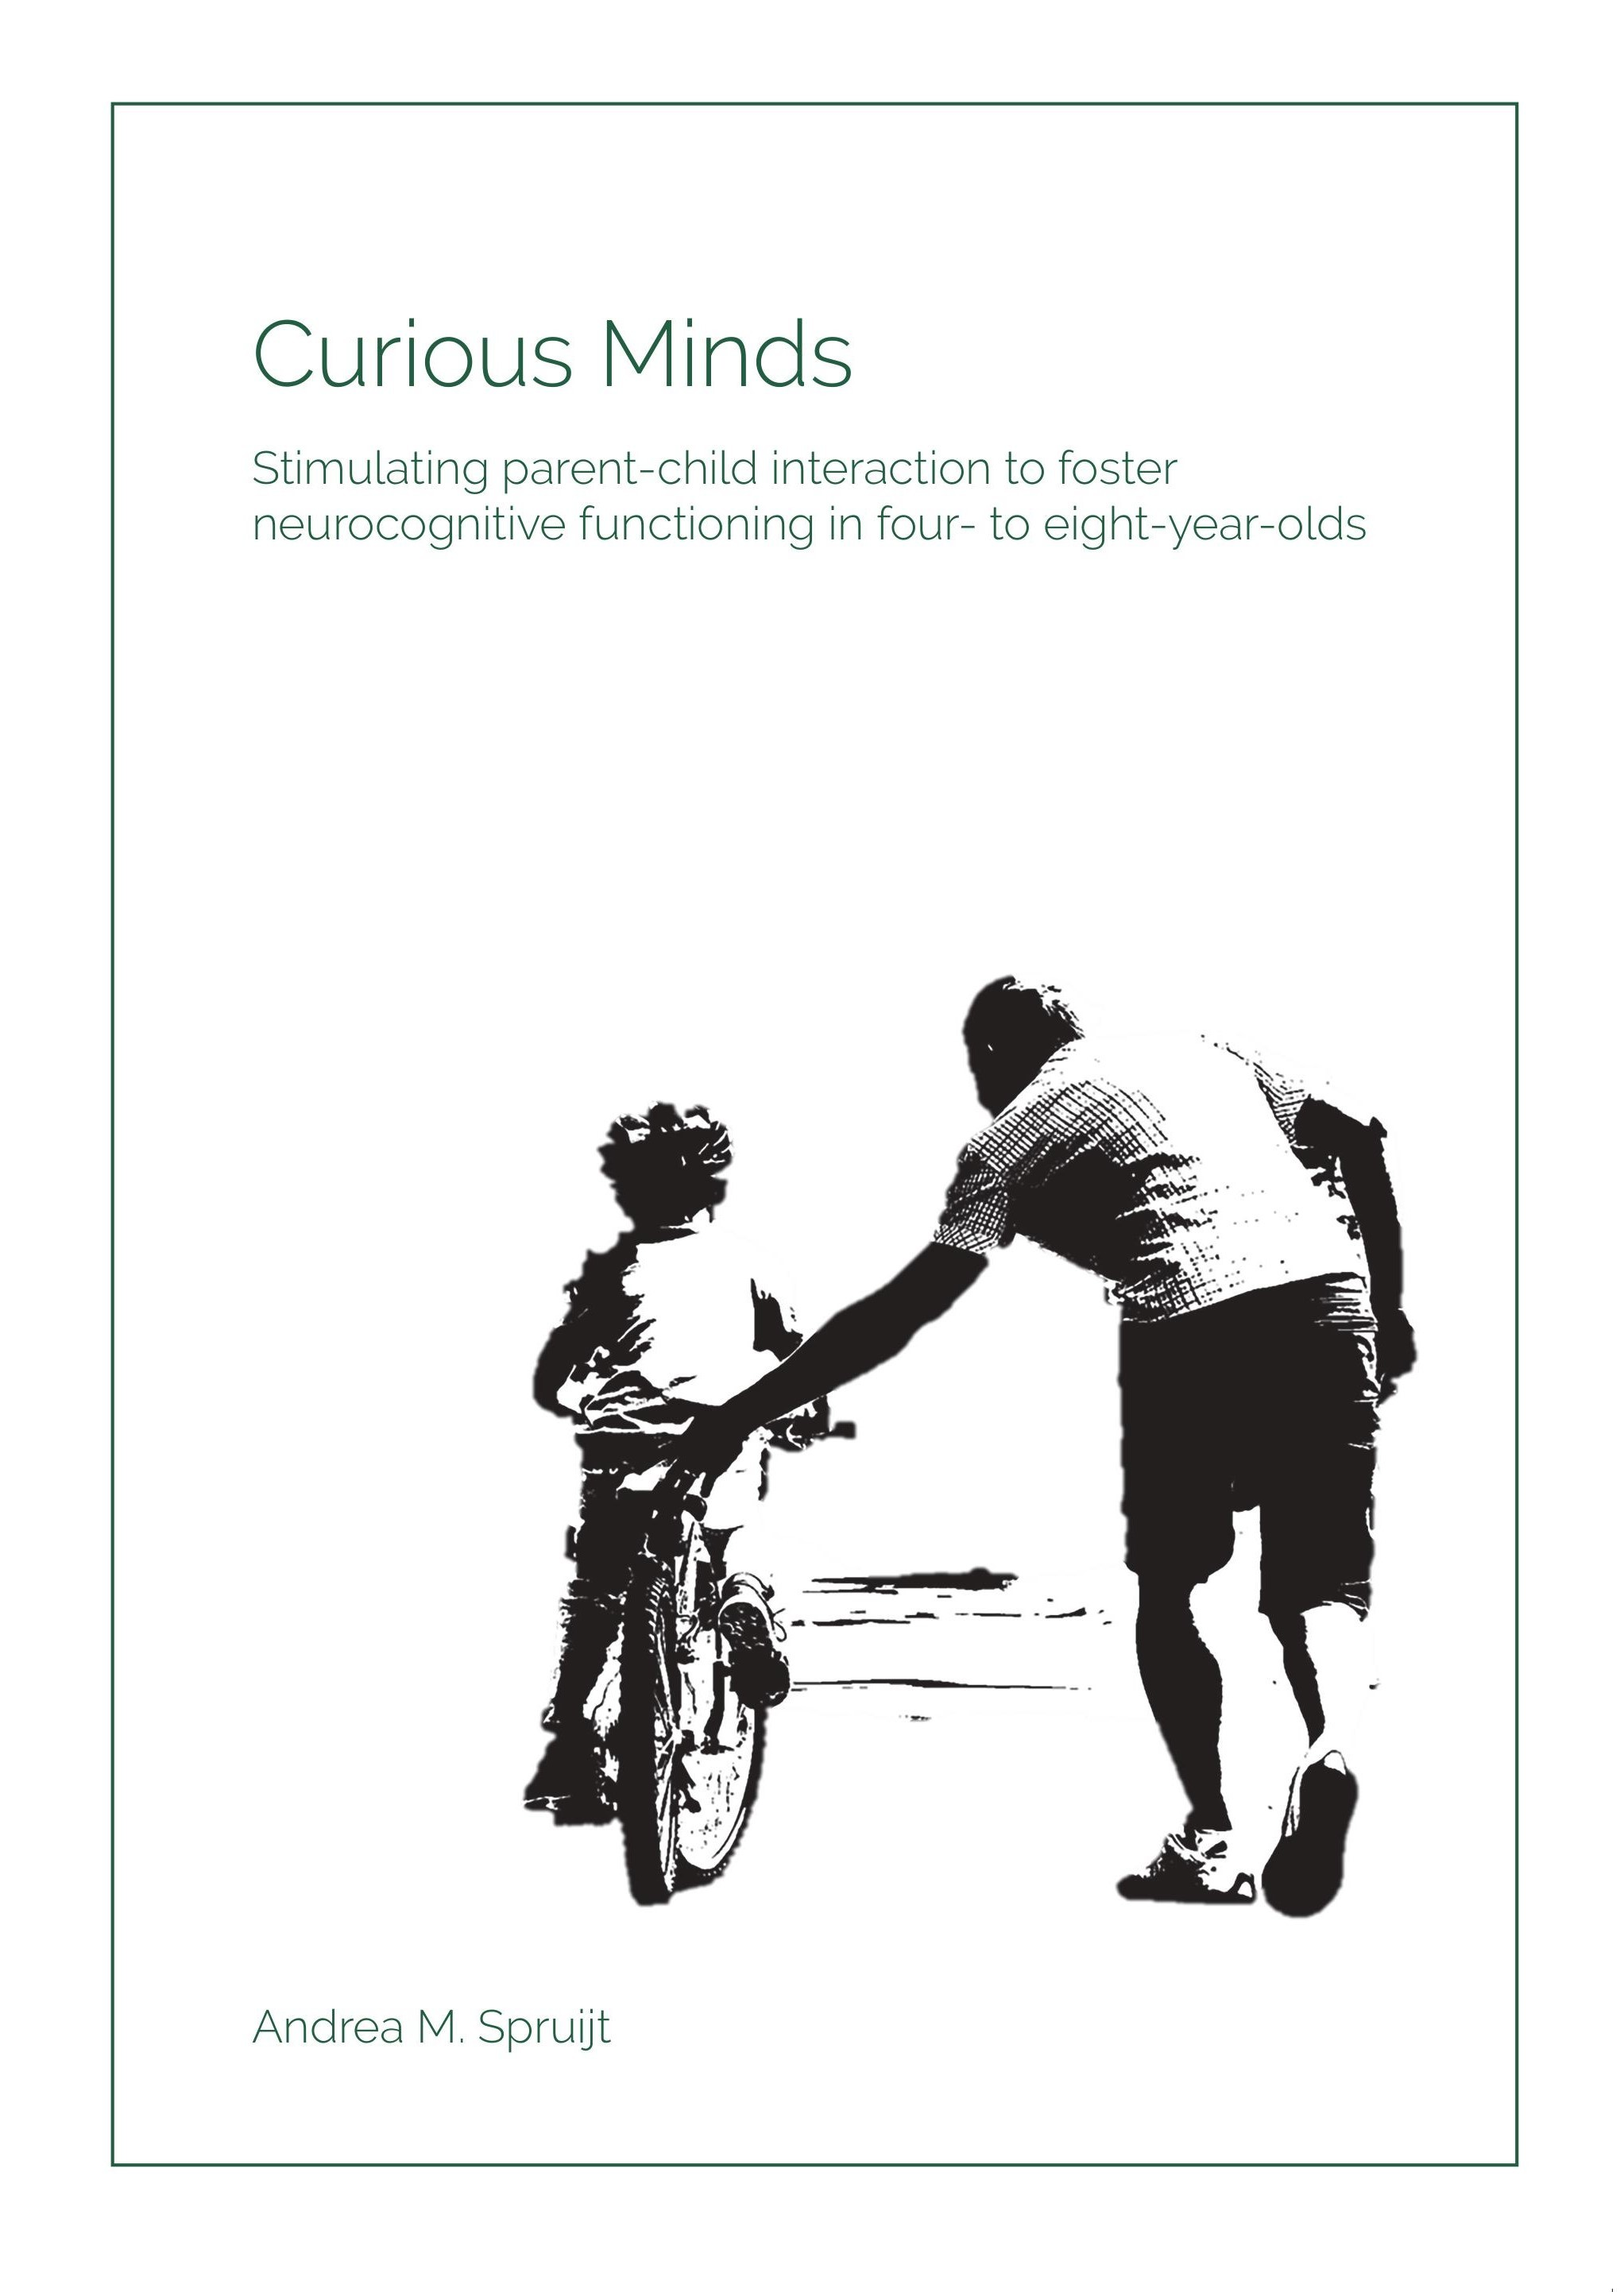 Curious minds: stimulating parent-child interaction to foster neurocognitive functioning in four- to eight-year-olds door Andrea M. Spruijt